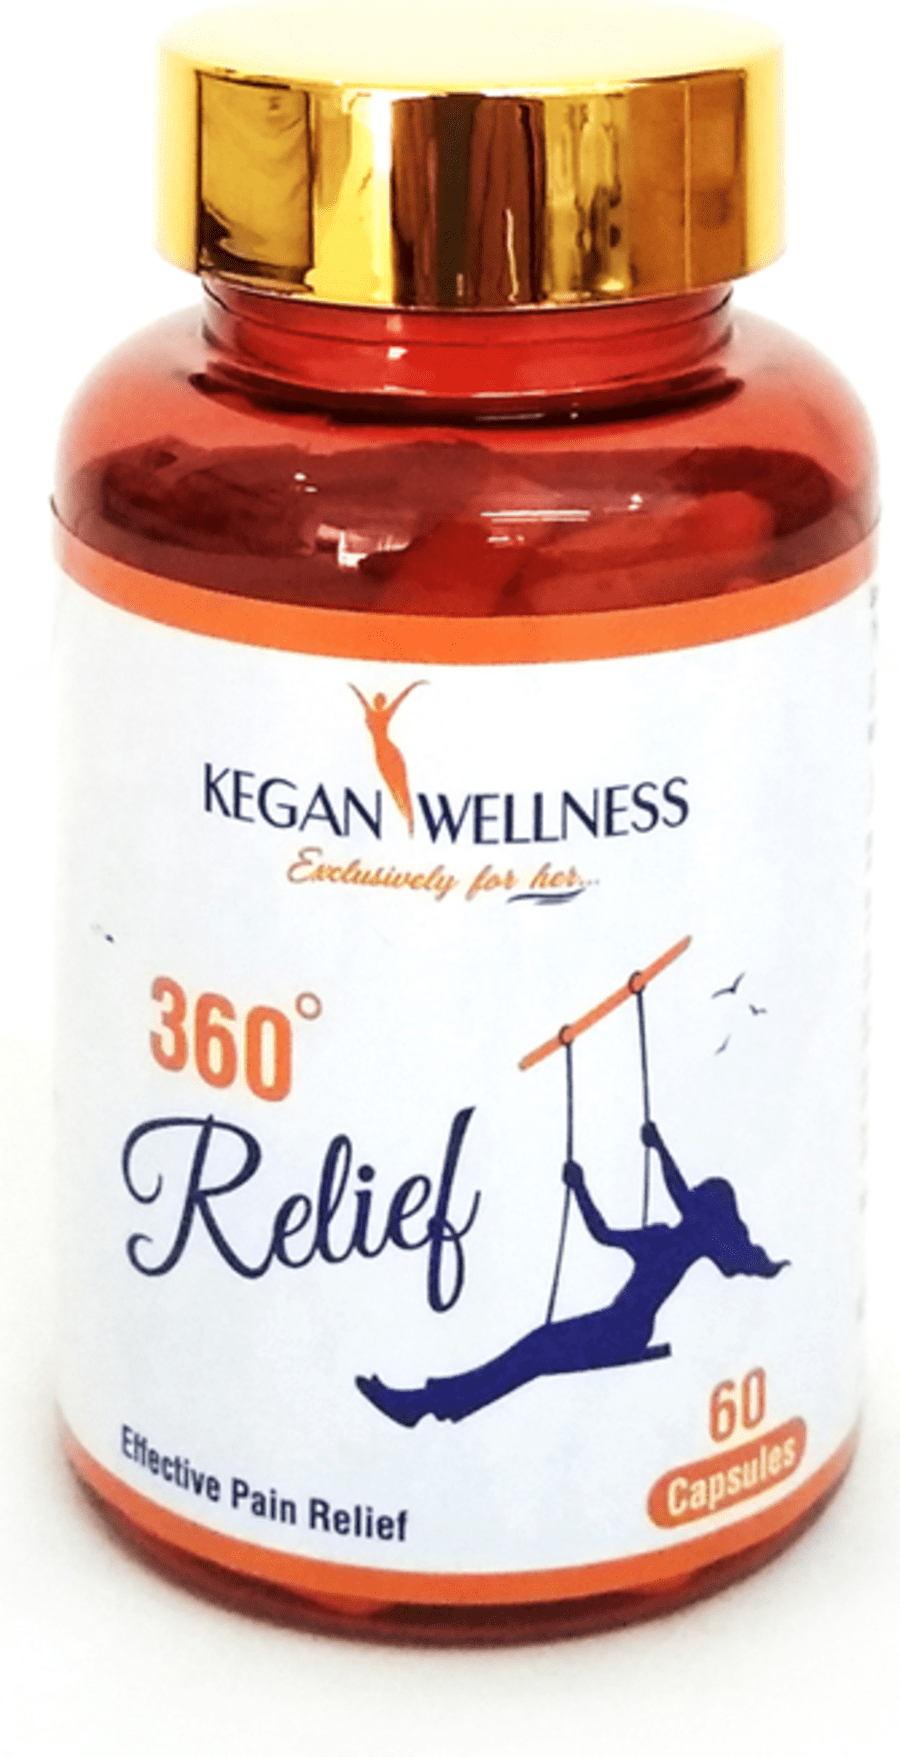 Kegan Wellness 360relief-pain Relief Supplements 60's